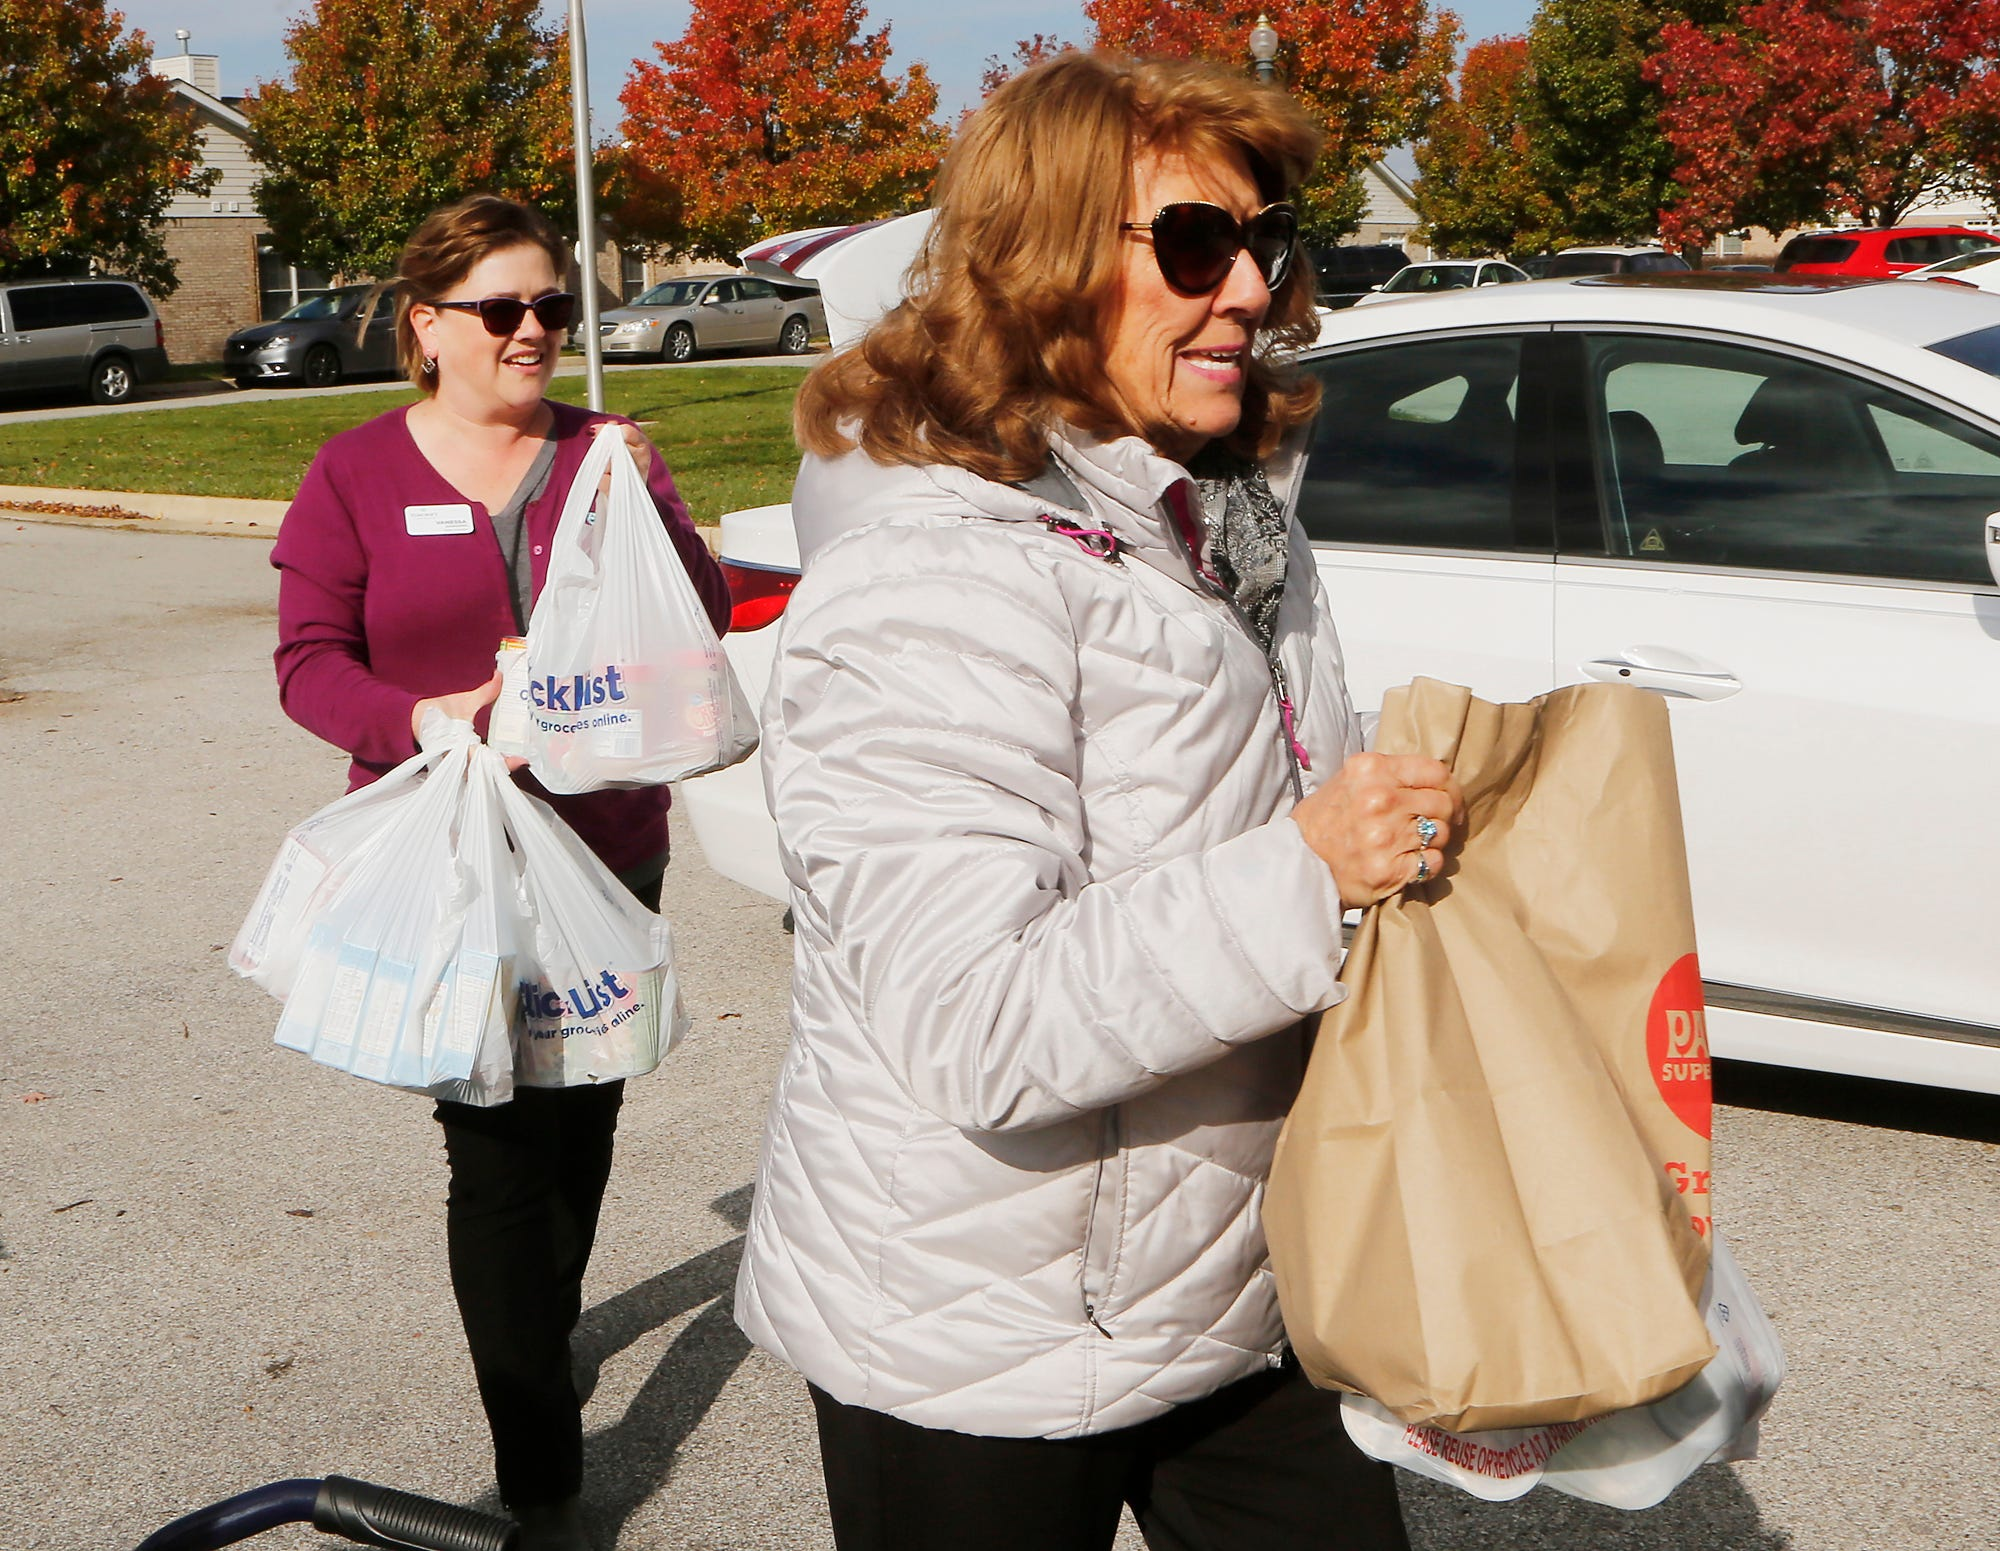 Kay Burry, right, brings several sacks of groceries to help with the Fill the Ambulance Food Drive Thursday, November 8, 2018, at Elmcroft senior living community, 3575 Senior Place in West Lafayette. Burry who is with Soller-Baker Funeral Homes, said everybody in the office participated in food donations. Elmcroft teamed with Phoenix Paramedics Solutions for the food drive to benefit Food Finders Food Bank. Behind Burry is Vanessa Sowders from Elmcroft.